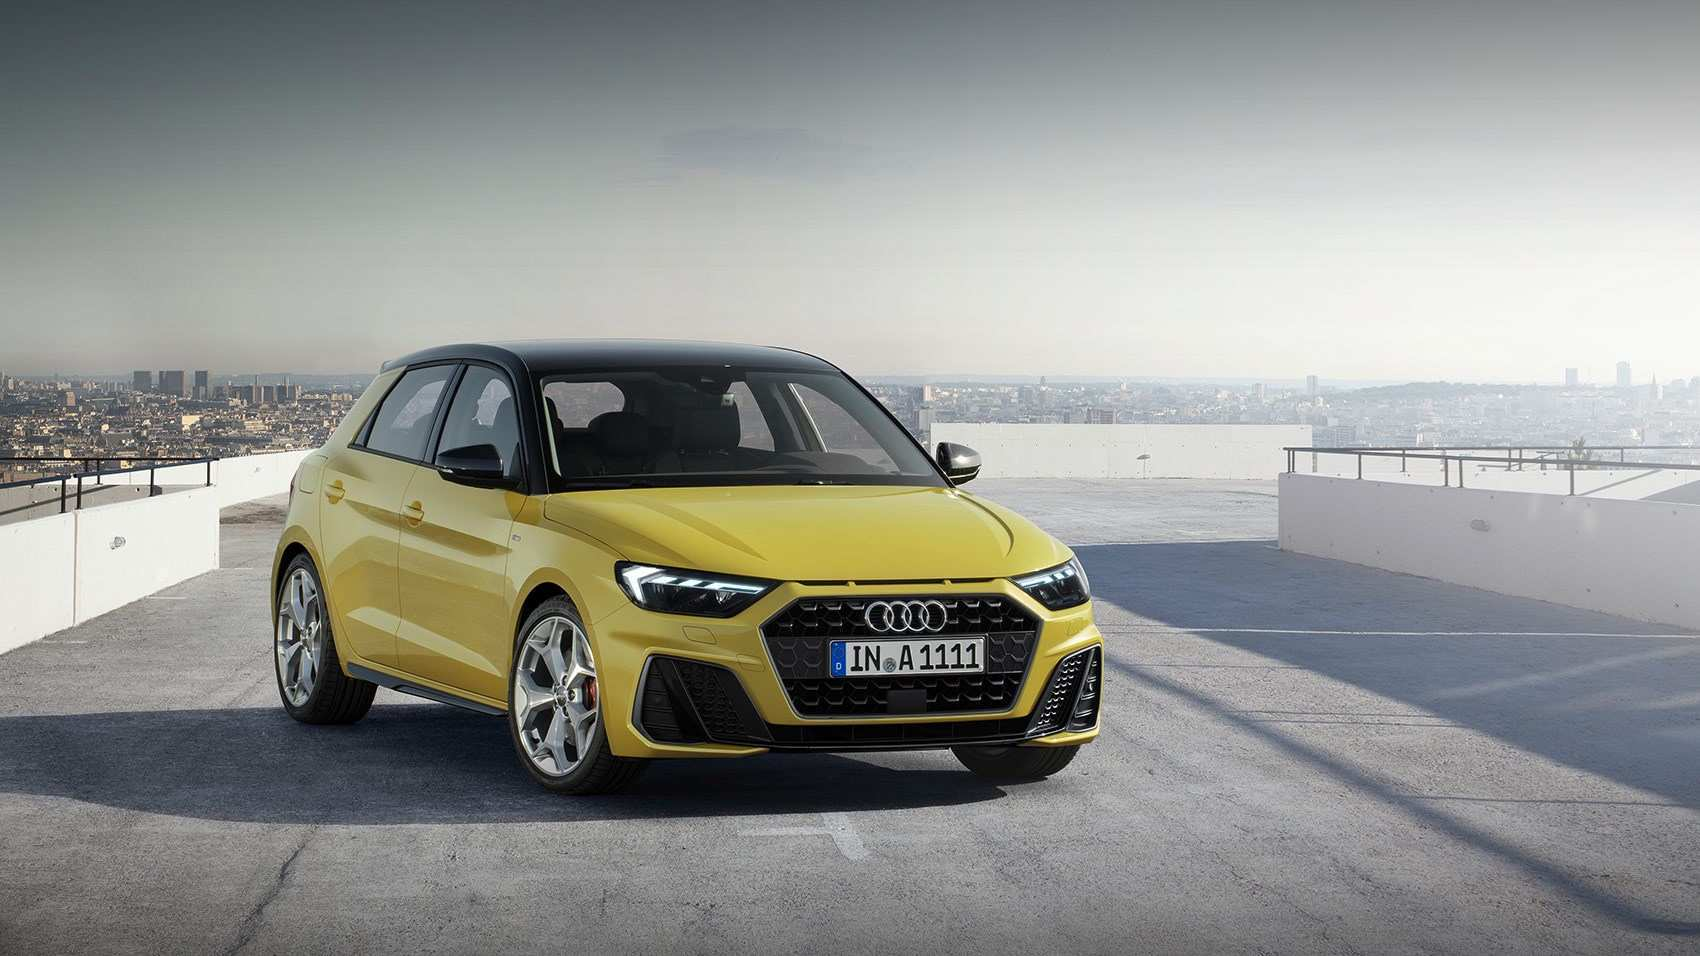 83 The Best 2019 Audi Dealer Order Guide Exterior